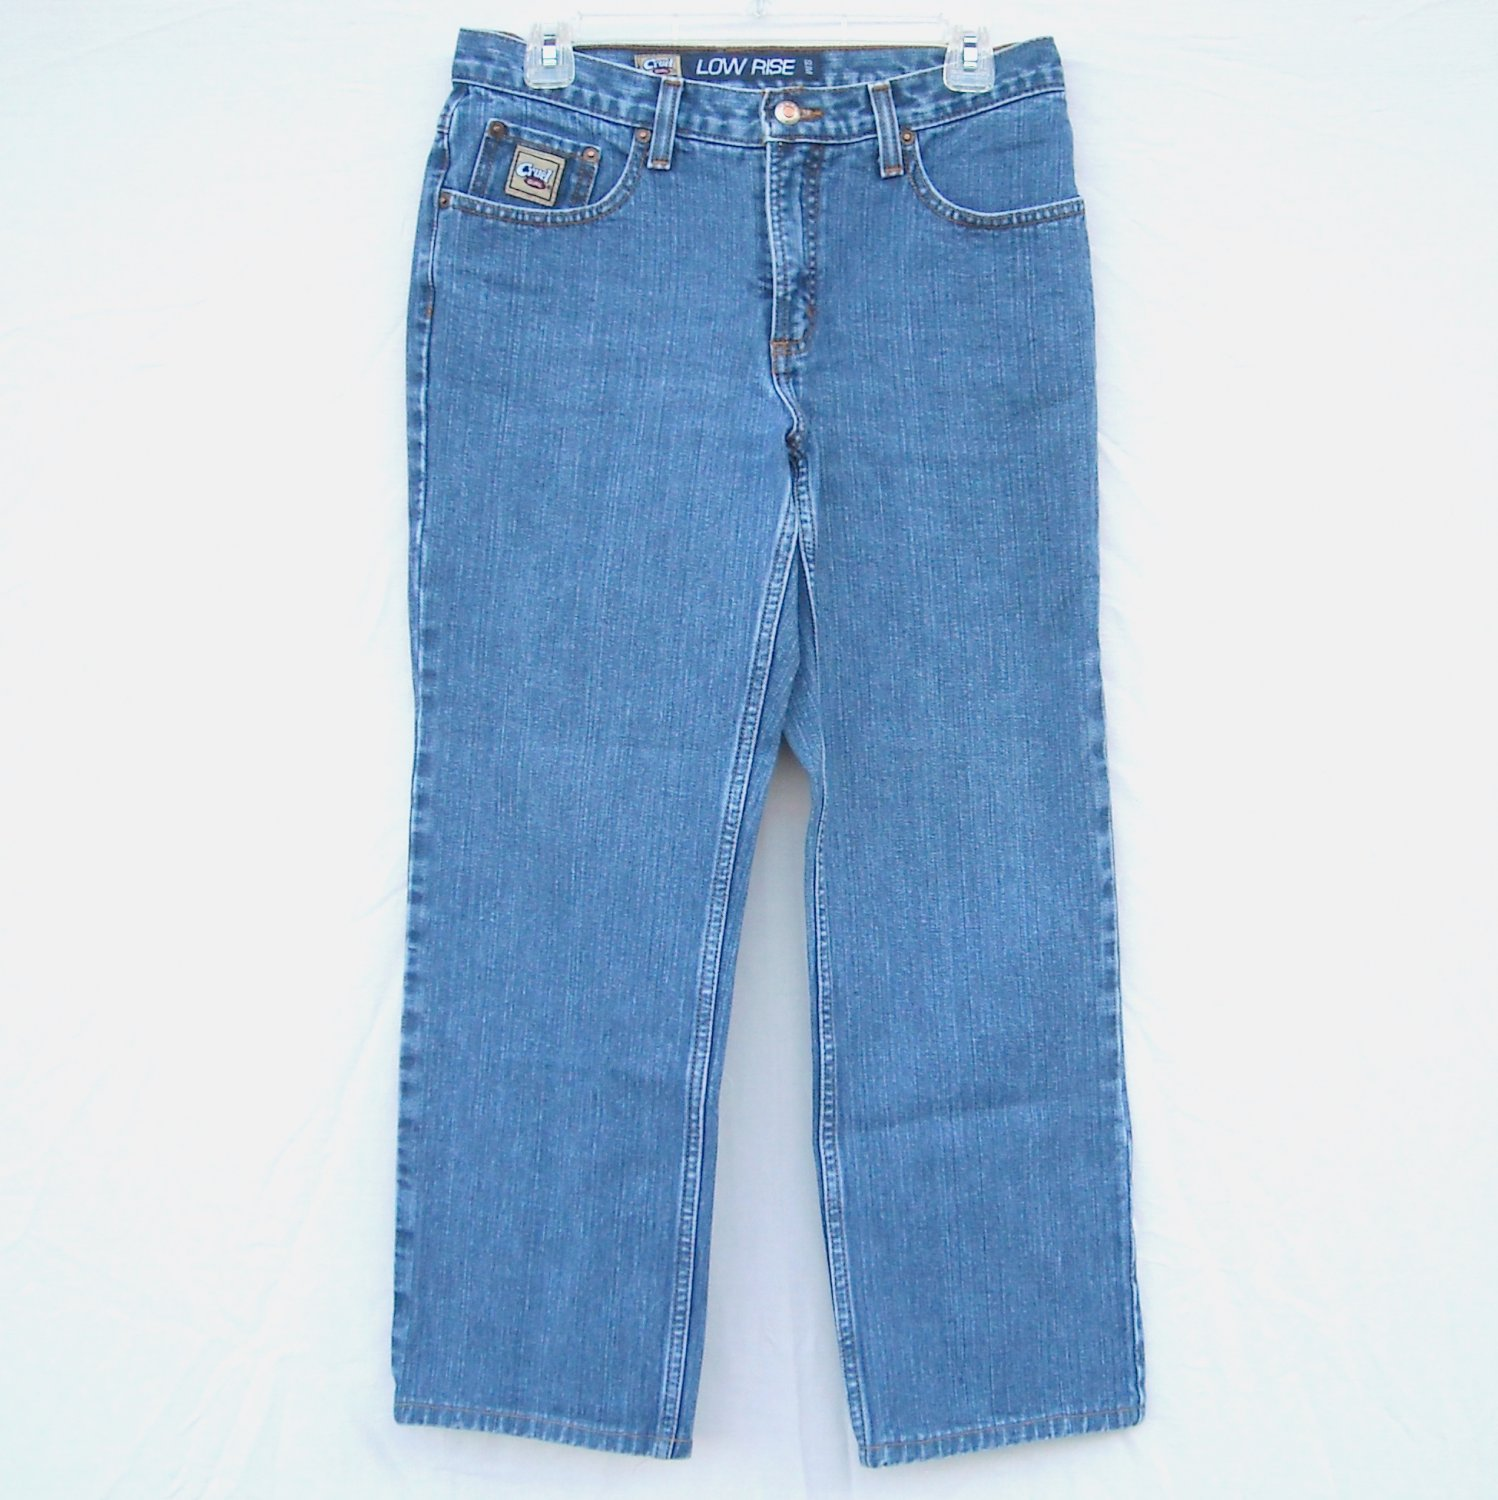 Cruel Girl #3 Low Rise Slim Denim Jeans Juniors Size 9 Short